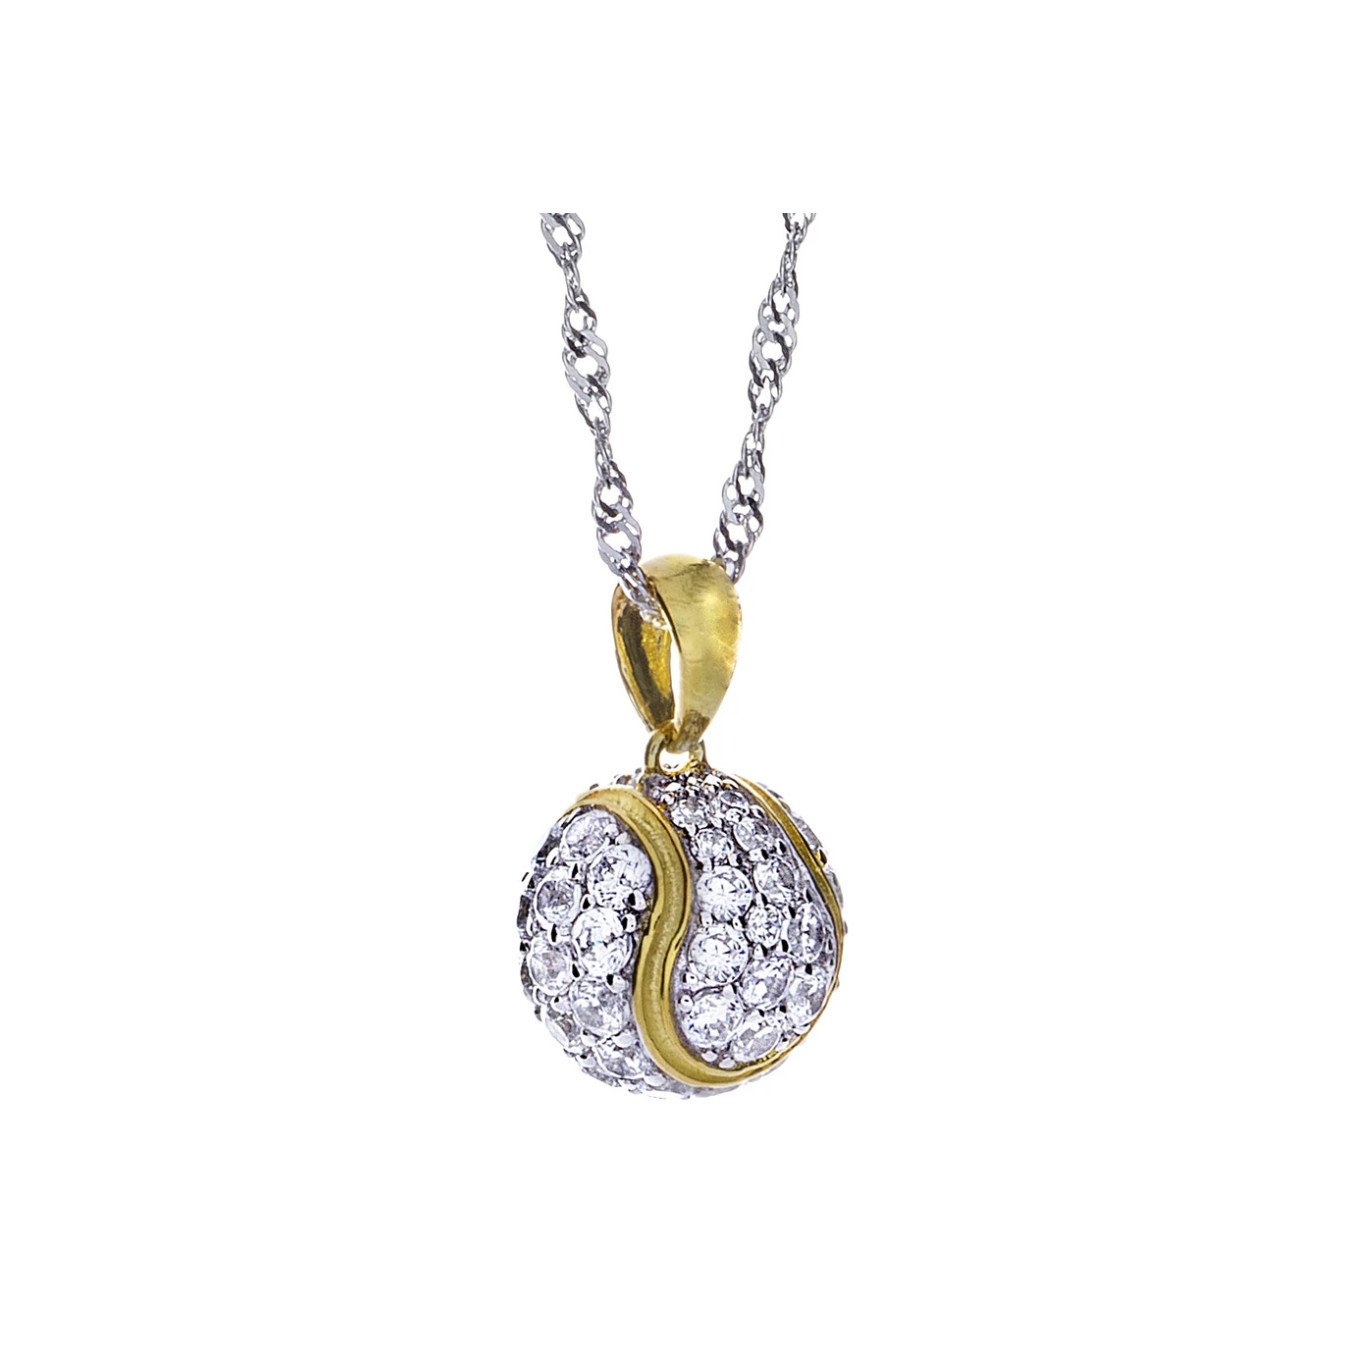 Tennis necklace consisting of tennis ball pendant – CZs, 925 silver, and 18K micro plate yellow gold-plating